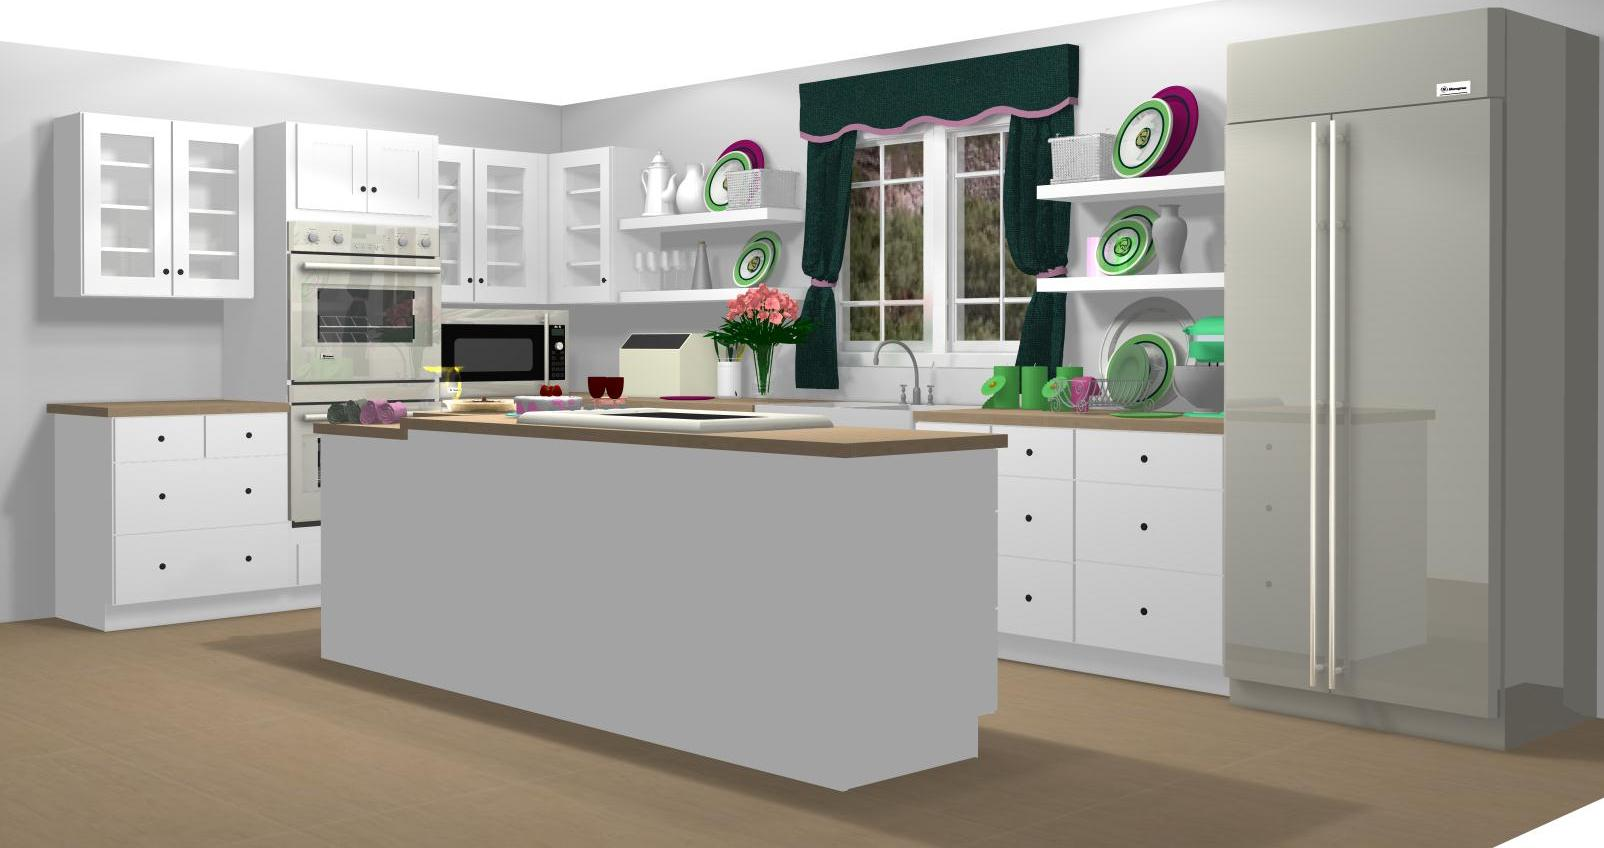 Famous Kitchens Get The Look Sandra Lee Tv Chef 39 S Edition